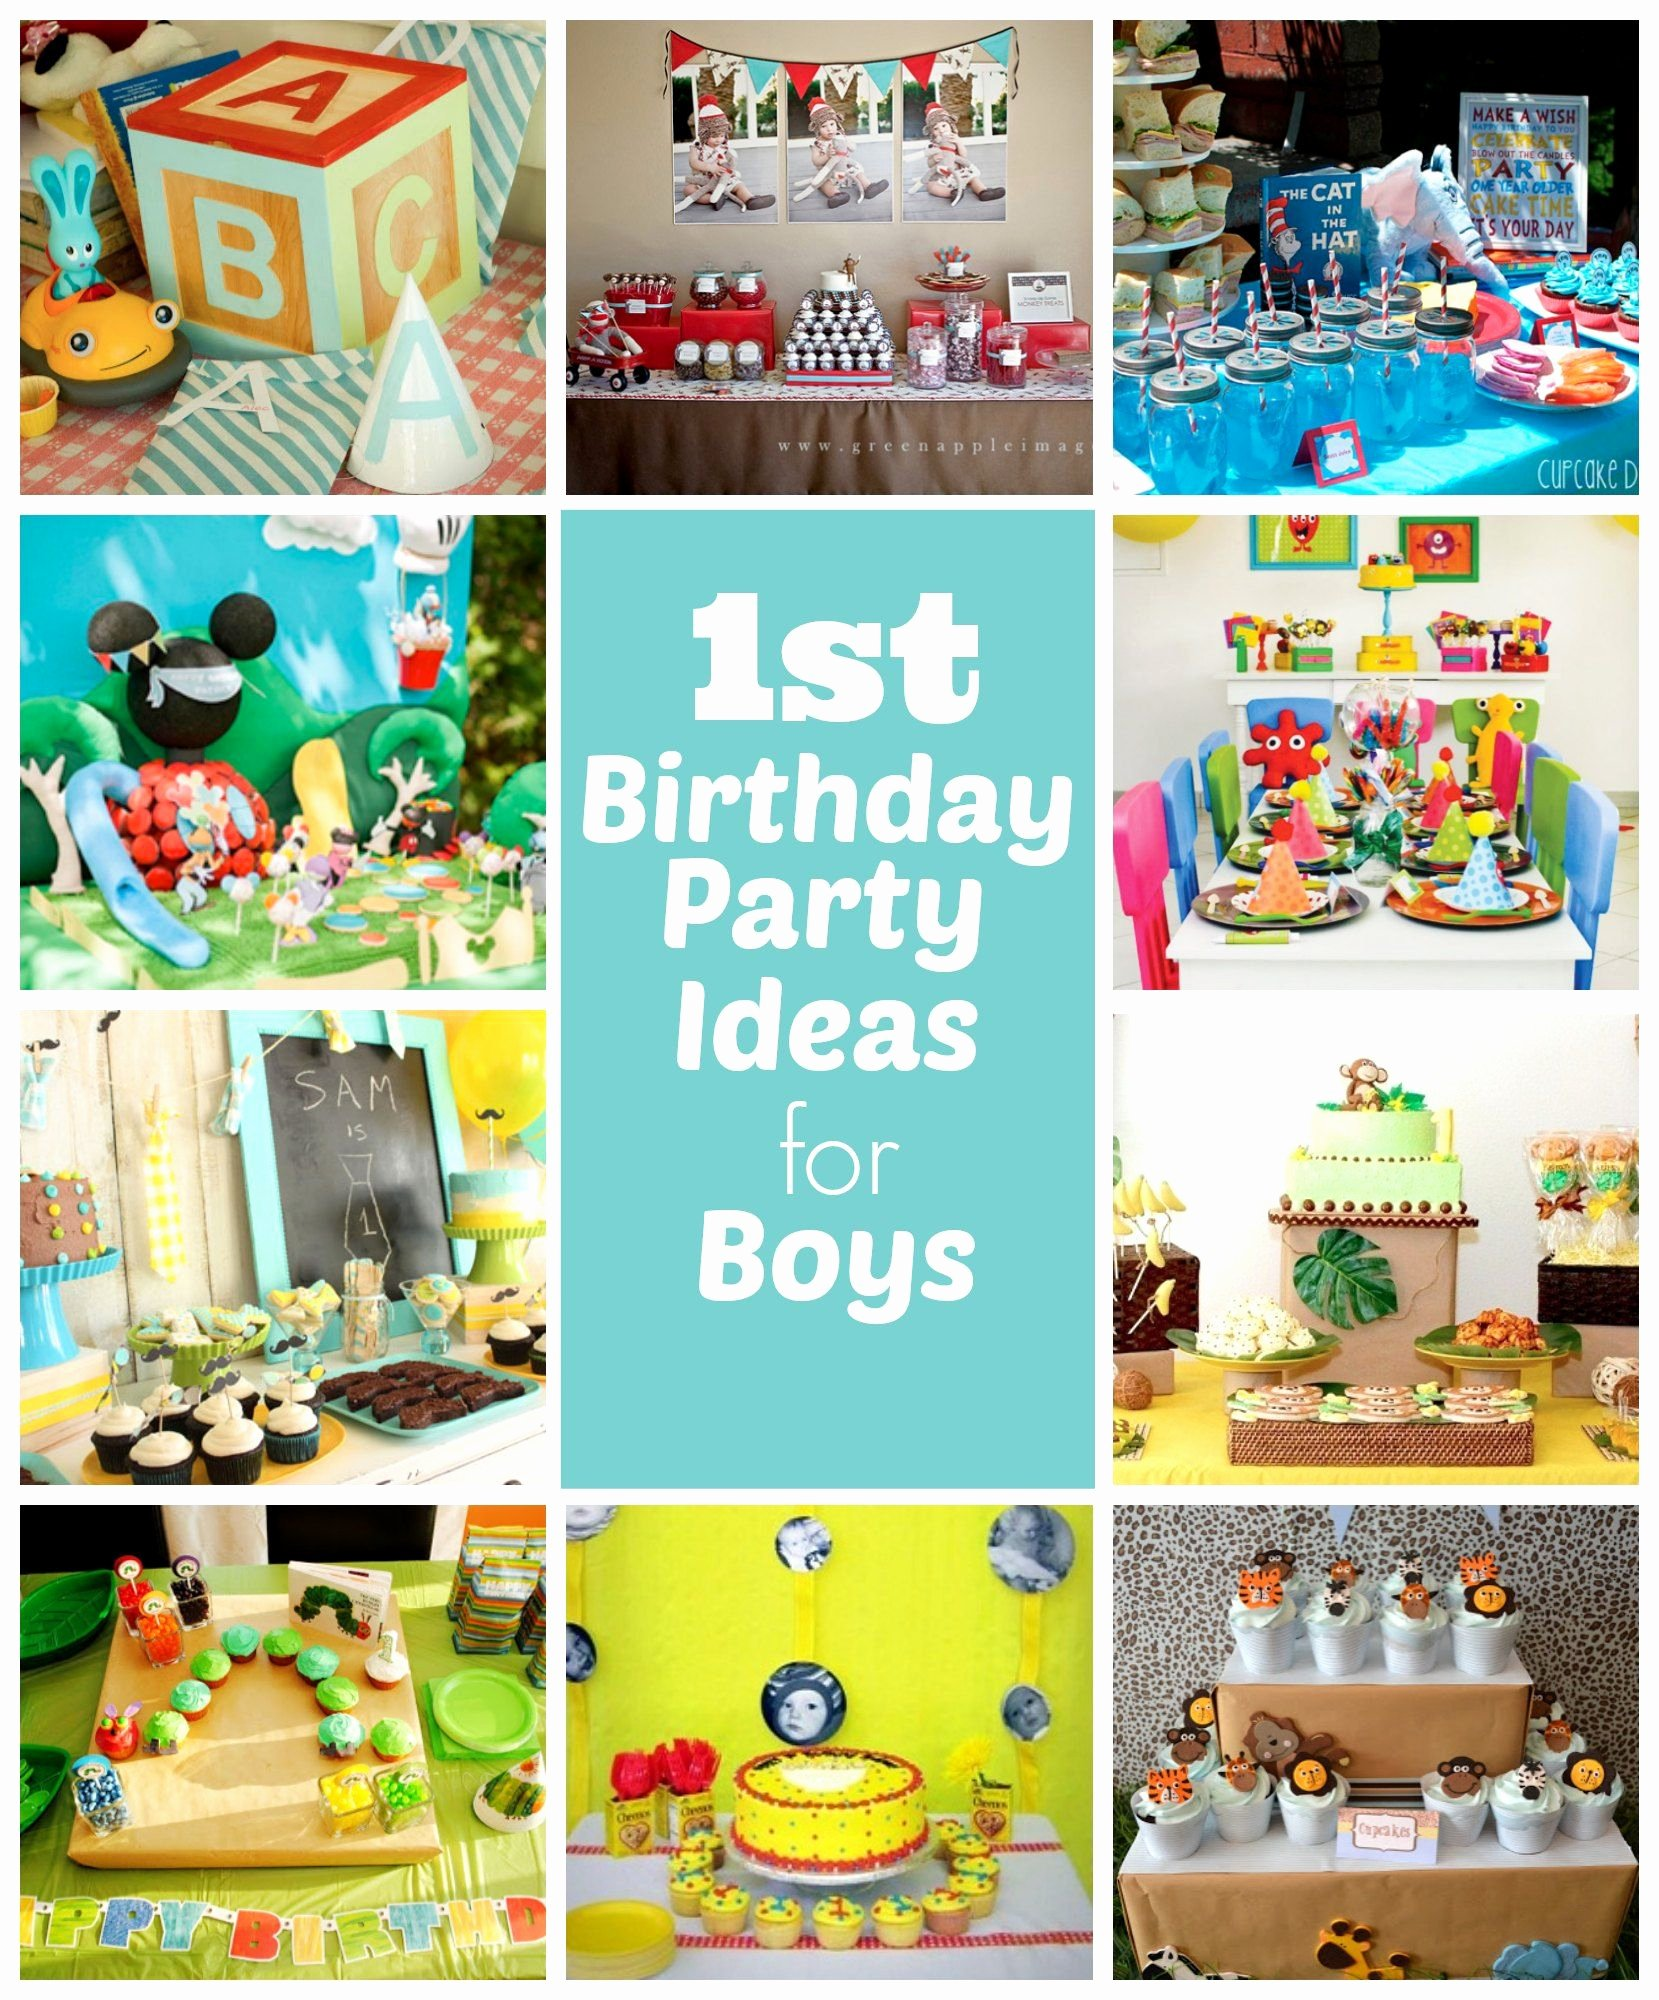 1st Birthday Decoration Ideas at Home for Boy Fresh 1st Birthday Party Ideas for Boys Right Start Blog